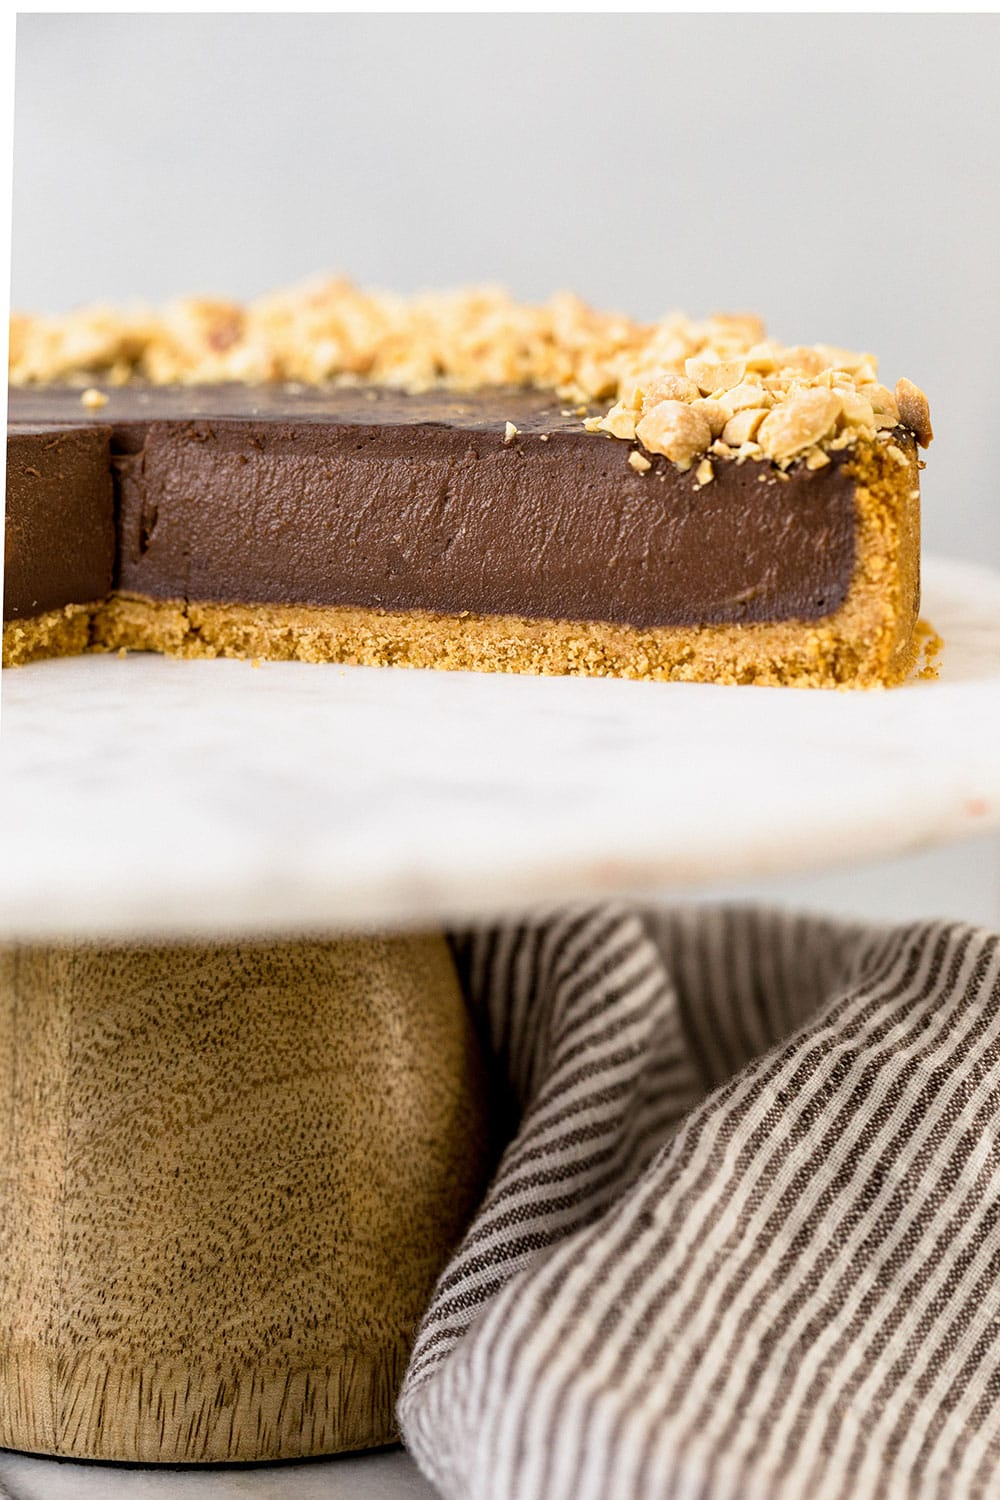 Chocolate Peanut Butter Pudding Pie tastes like a giant Reese's peanut butter cup but so much better because it's made with thick and creamy pudding! This pie won't last long!!